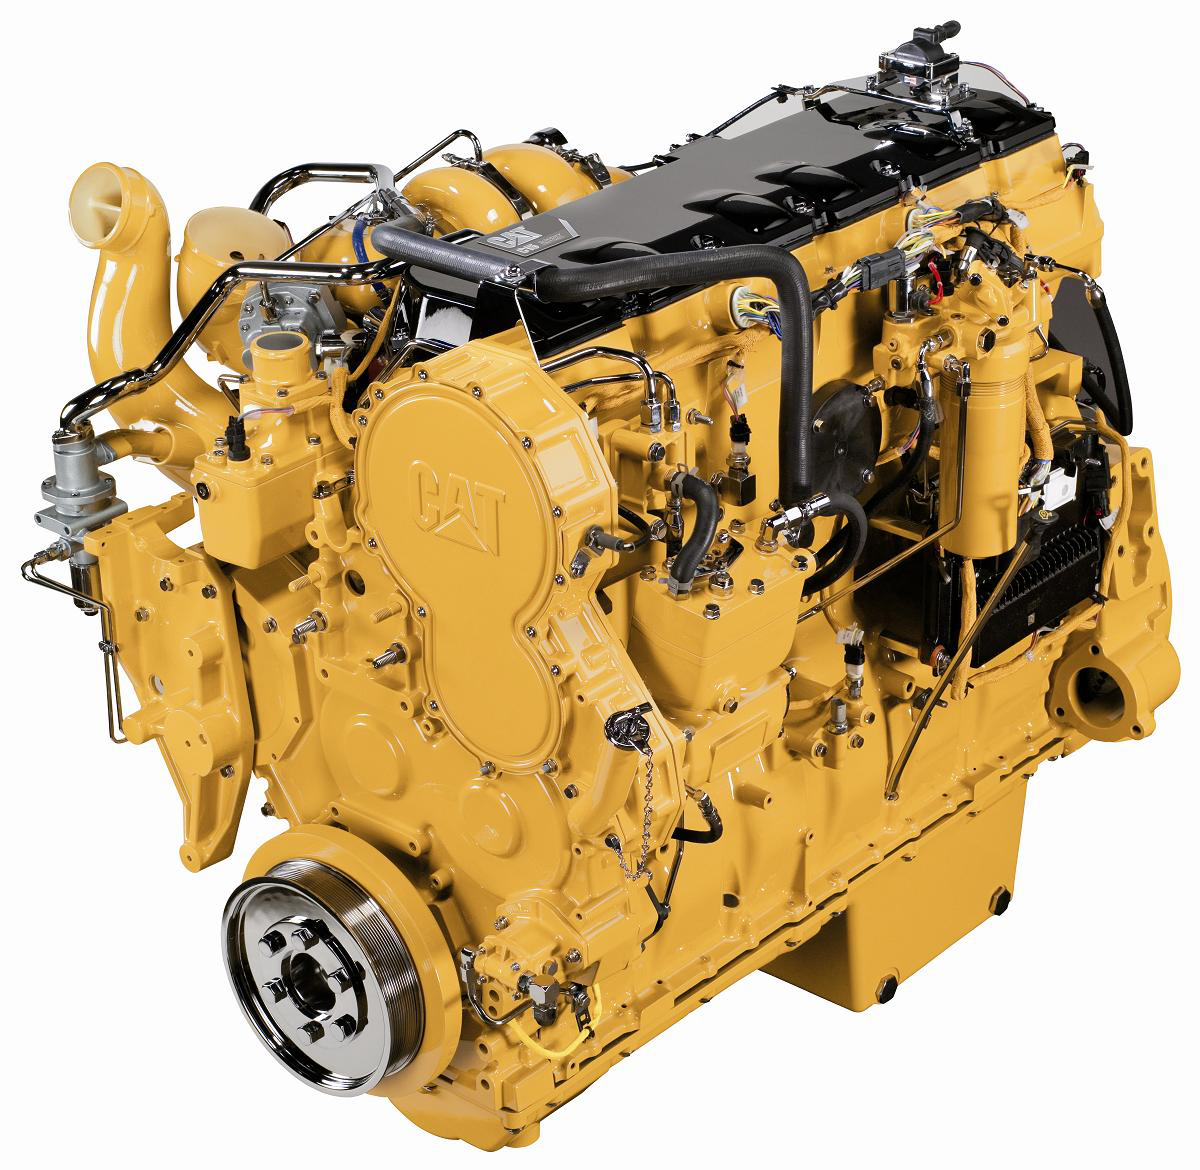 Natural Gas Conversion For Cat Truck Engines Gains Epa Approval 3512b Wiring Diagram